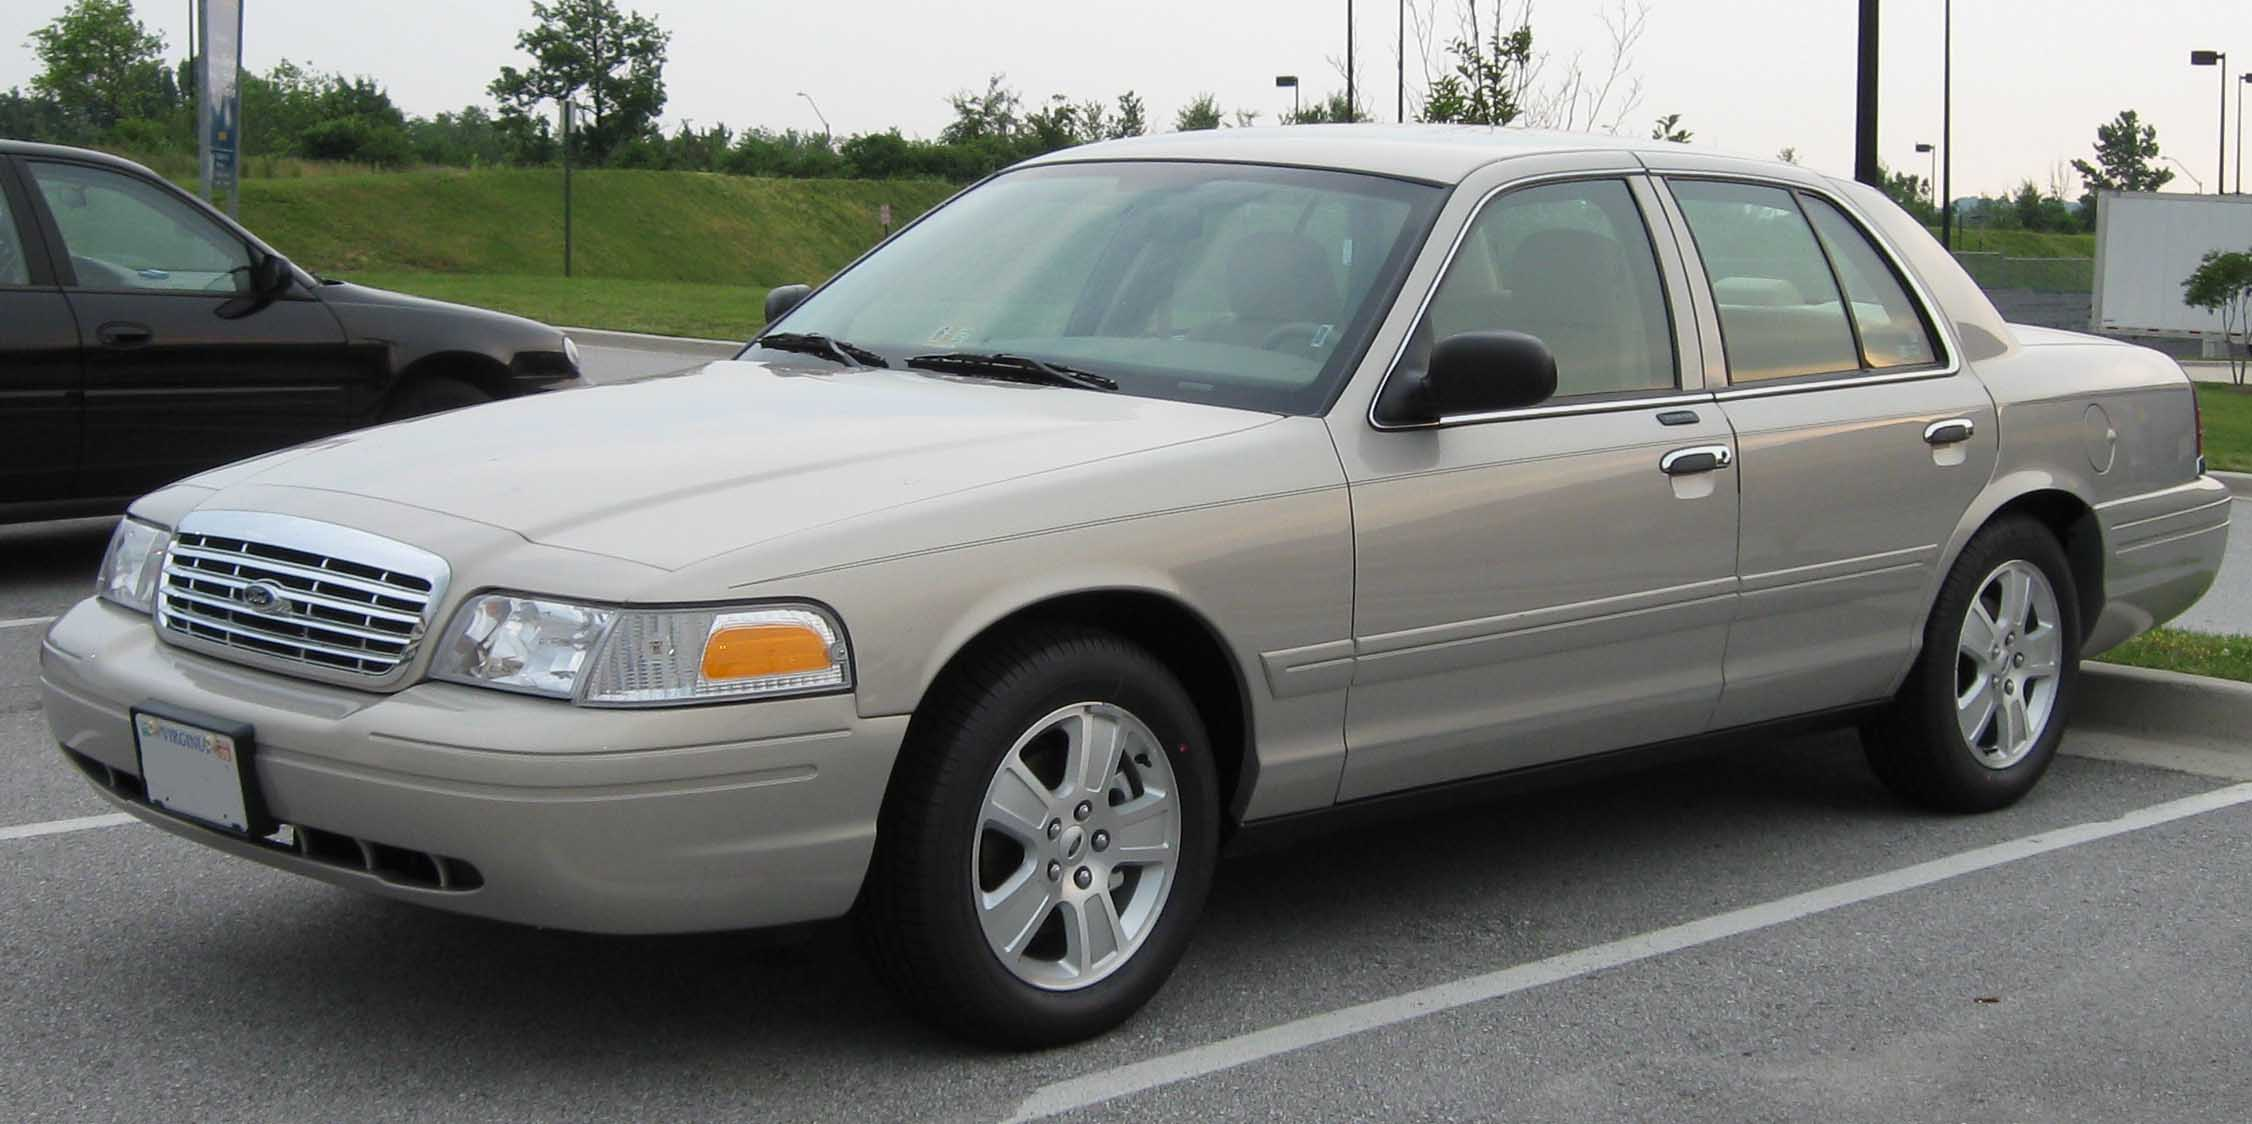 Ford Crown Victoria #8